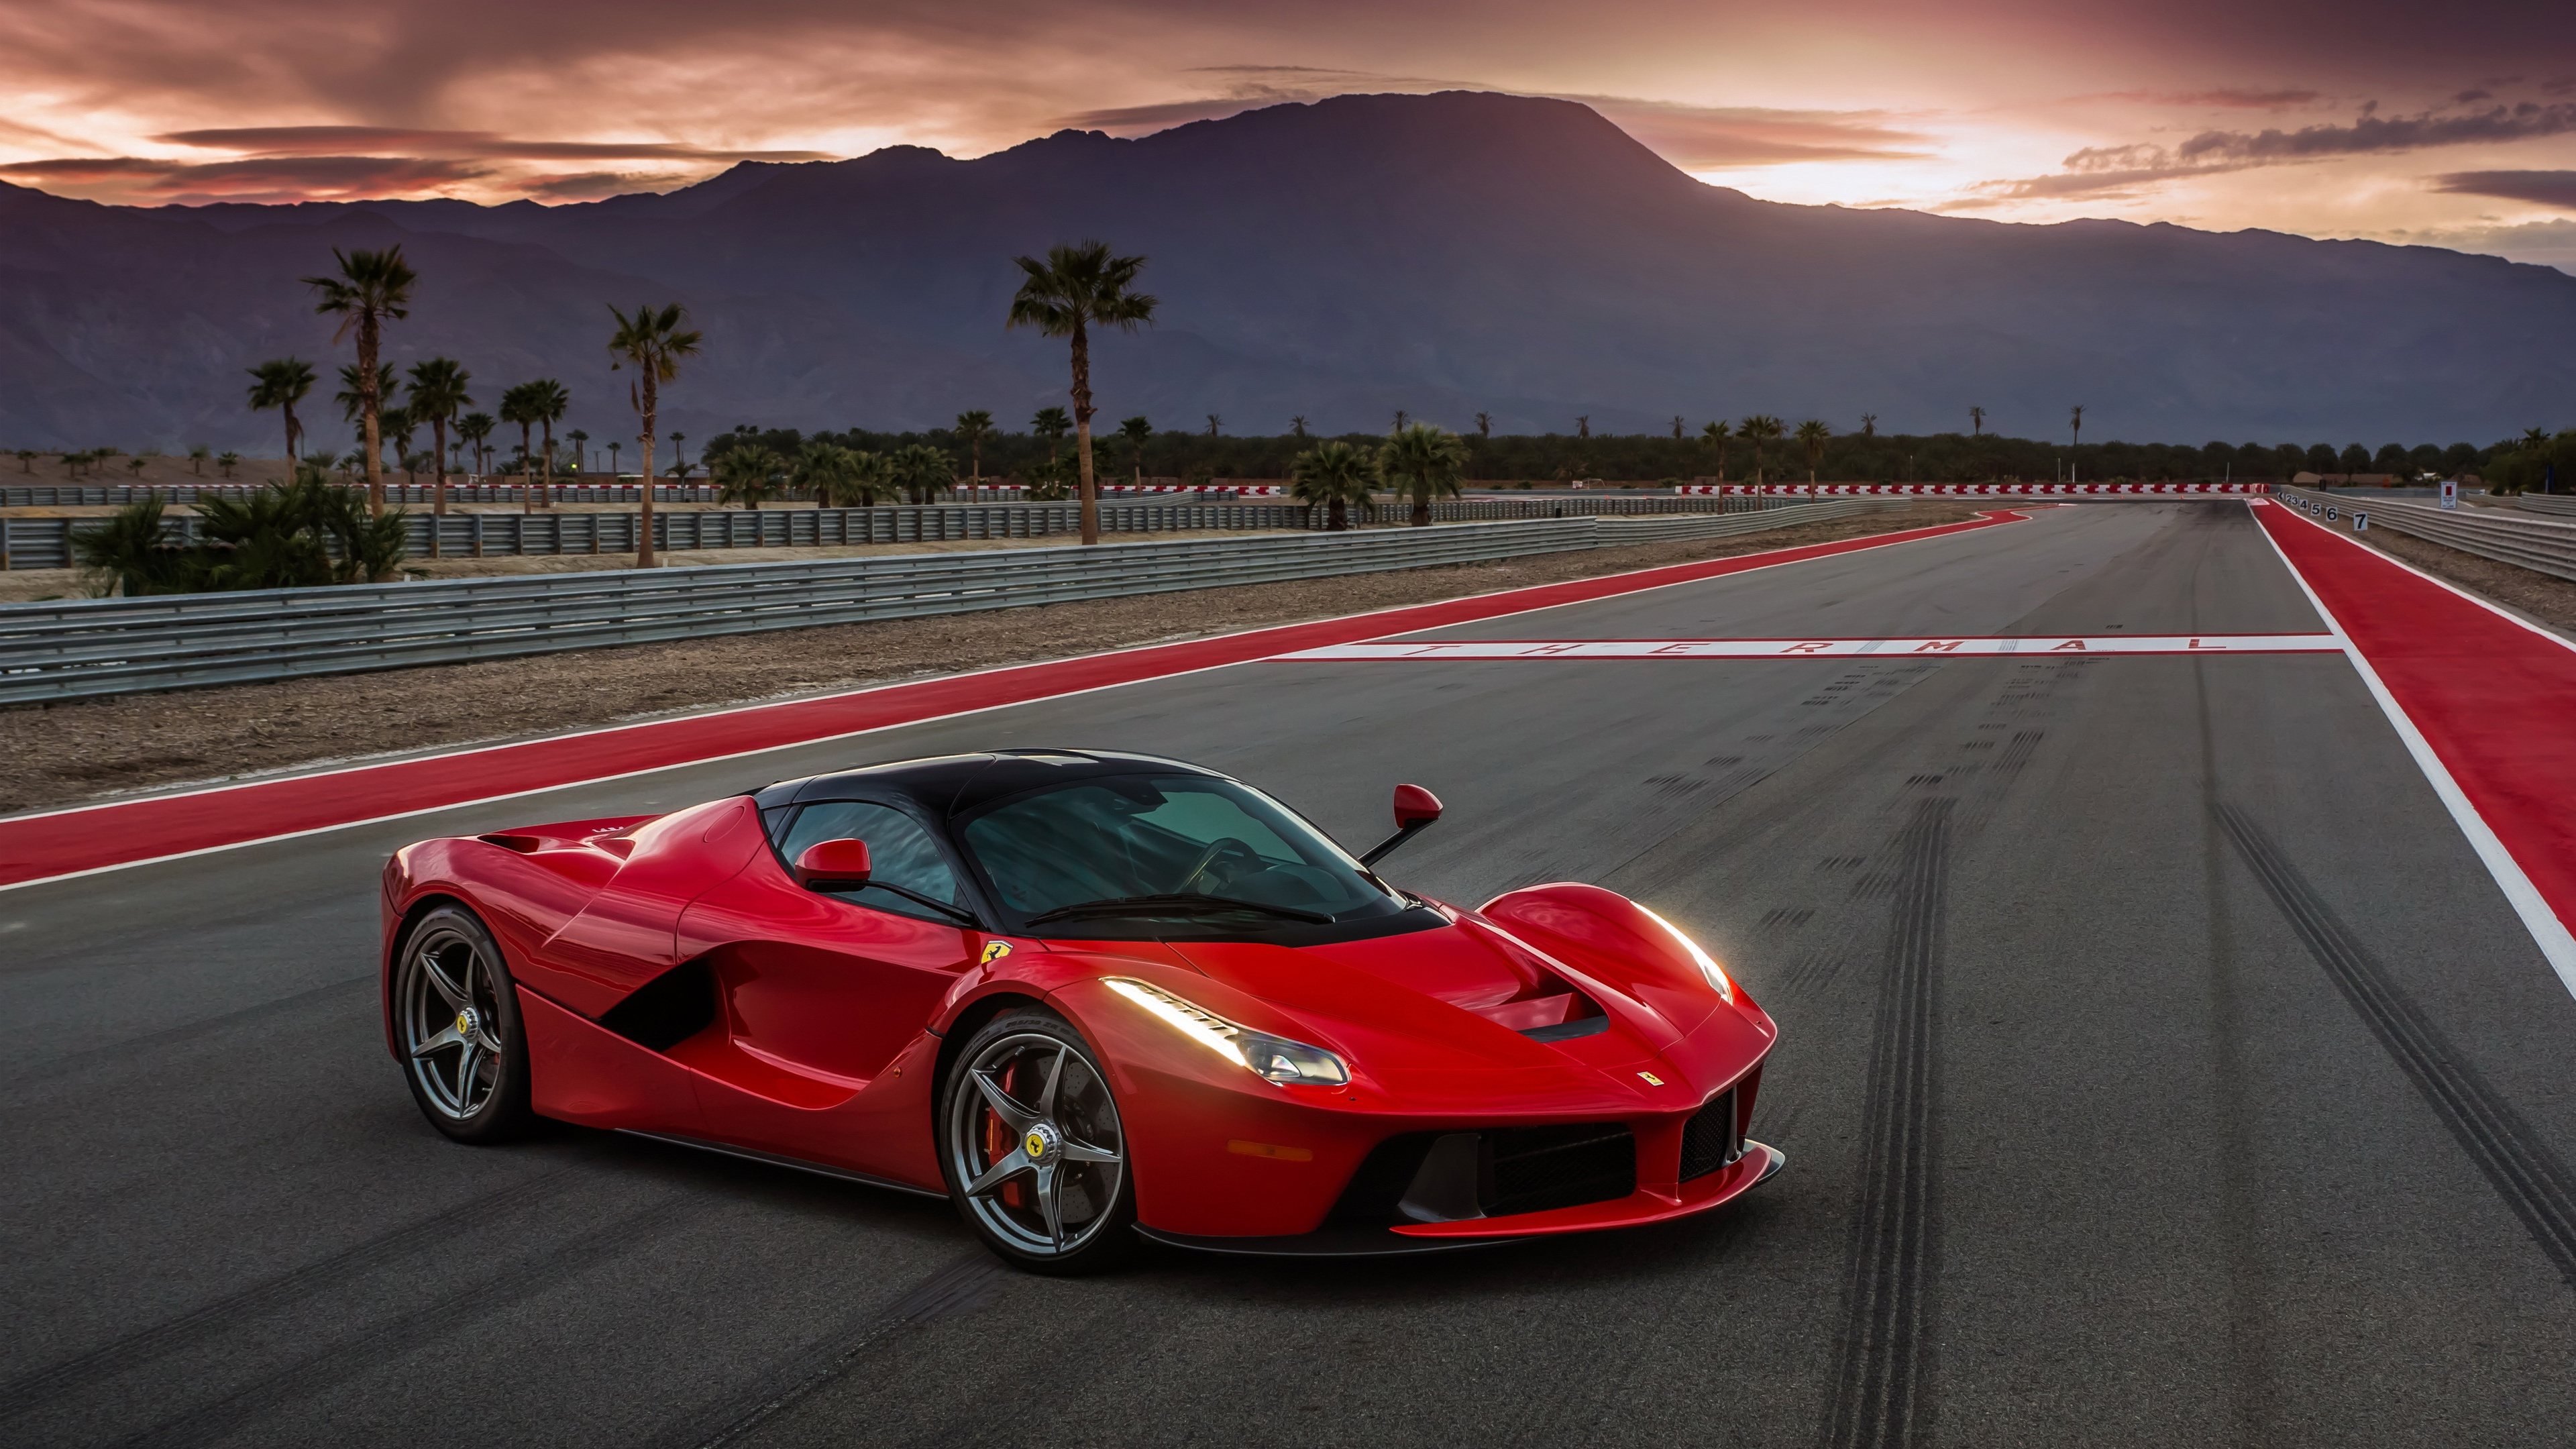 Ferrari Laferrari Wallpapers HD 4k 3840x2160.